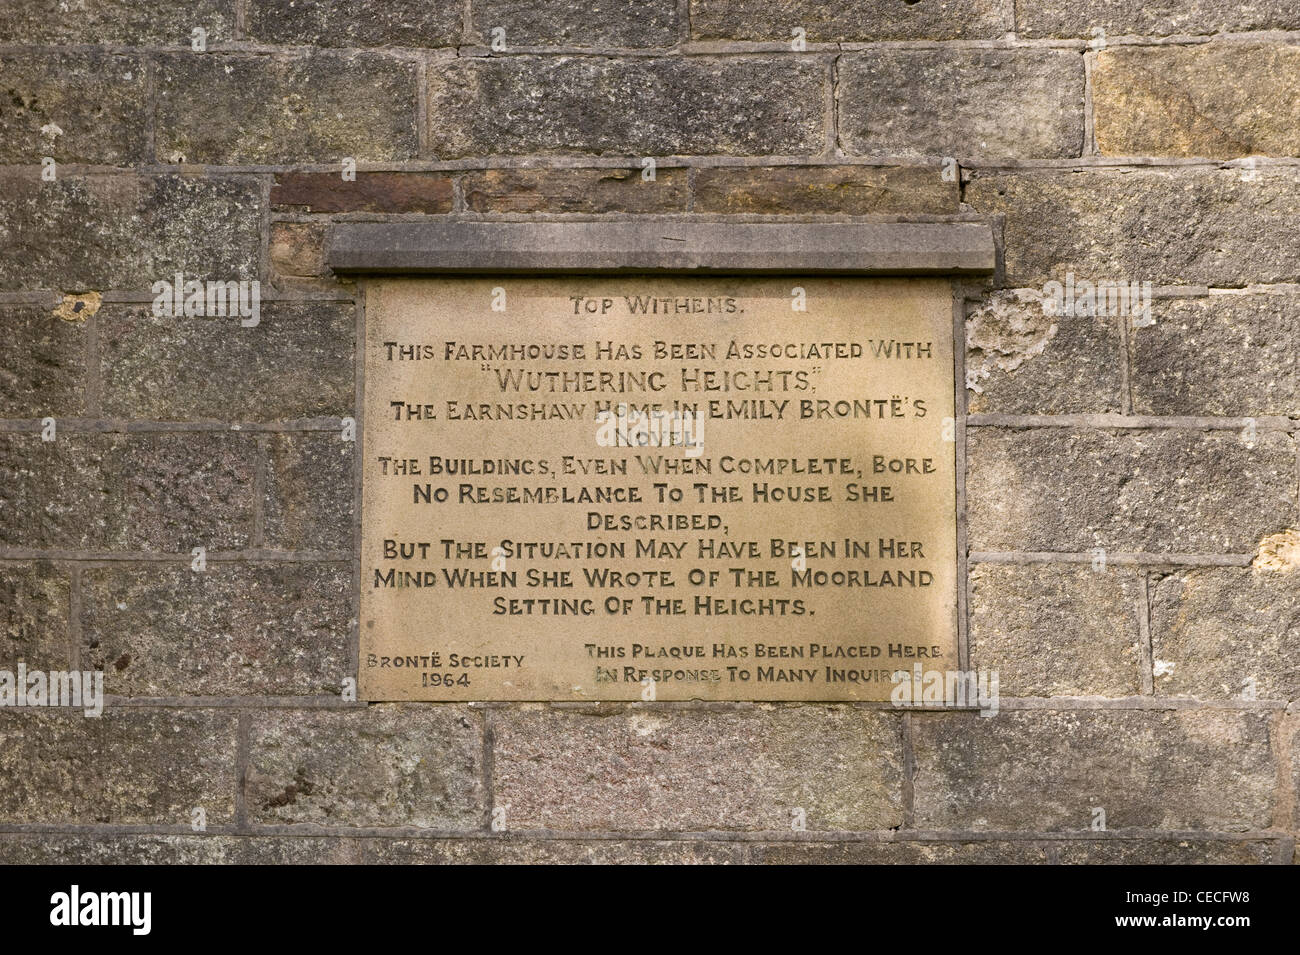 Close-up of plaque on Top Withens, crumbling farmhouse ruin on remote Pennine moors (Wuthering Heights?) - near Haworth, West Yorkshire, England, UK. Stock Photo